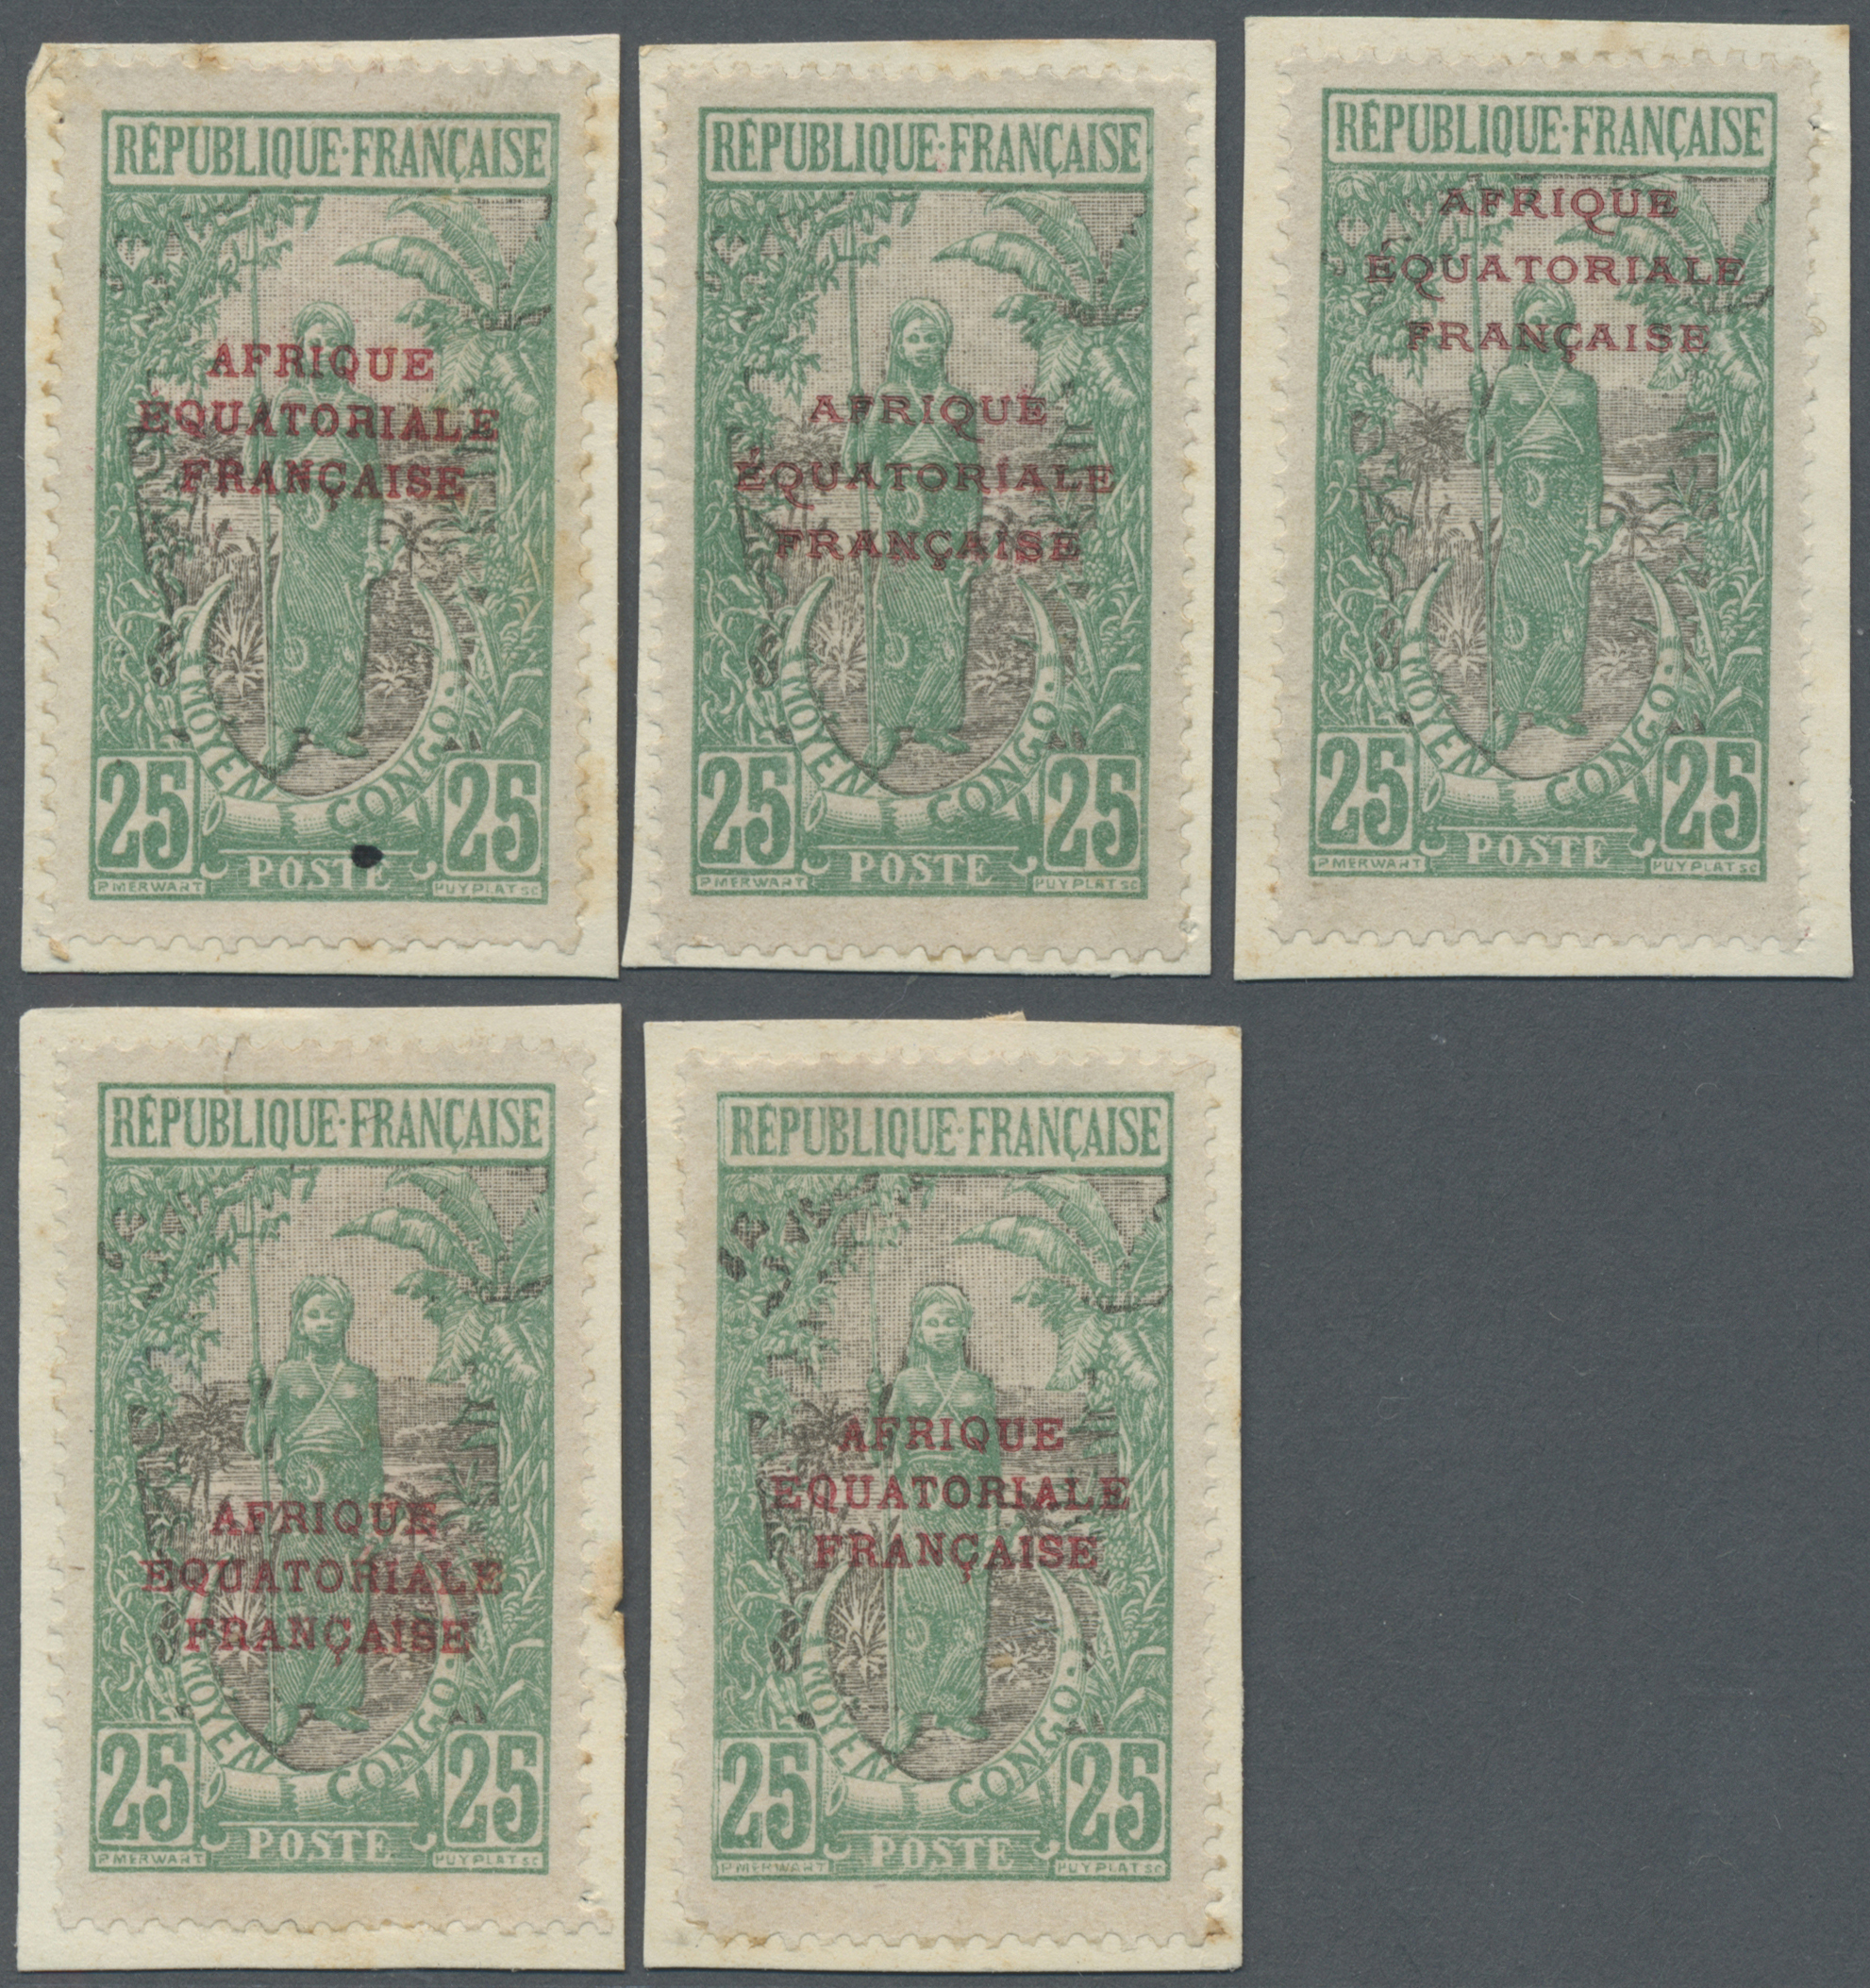 Lot 14112 - mittelkongo  -  Auktionshaus Christoph Gärtner GmbH & Co. KG Single lots Philately Overseas & Europe. Auction #39 Day 4